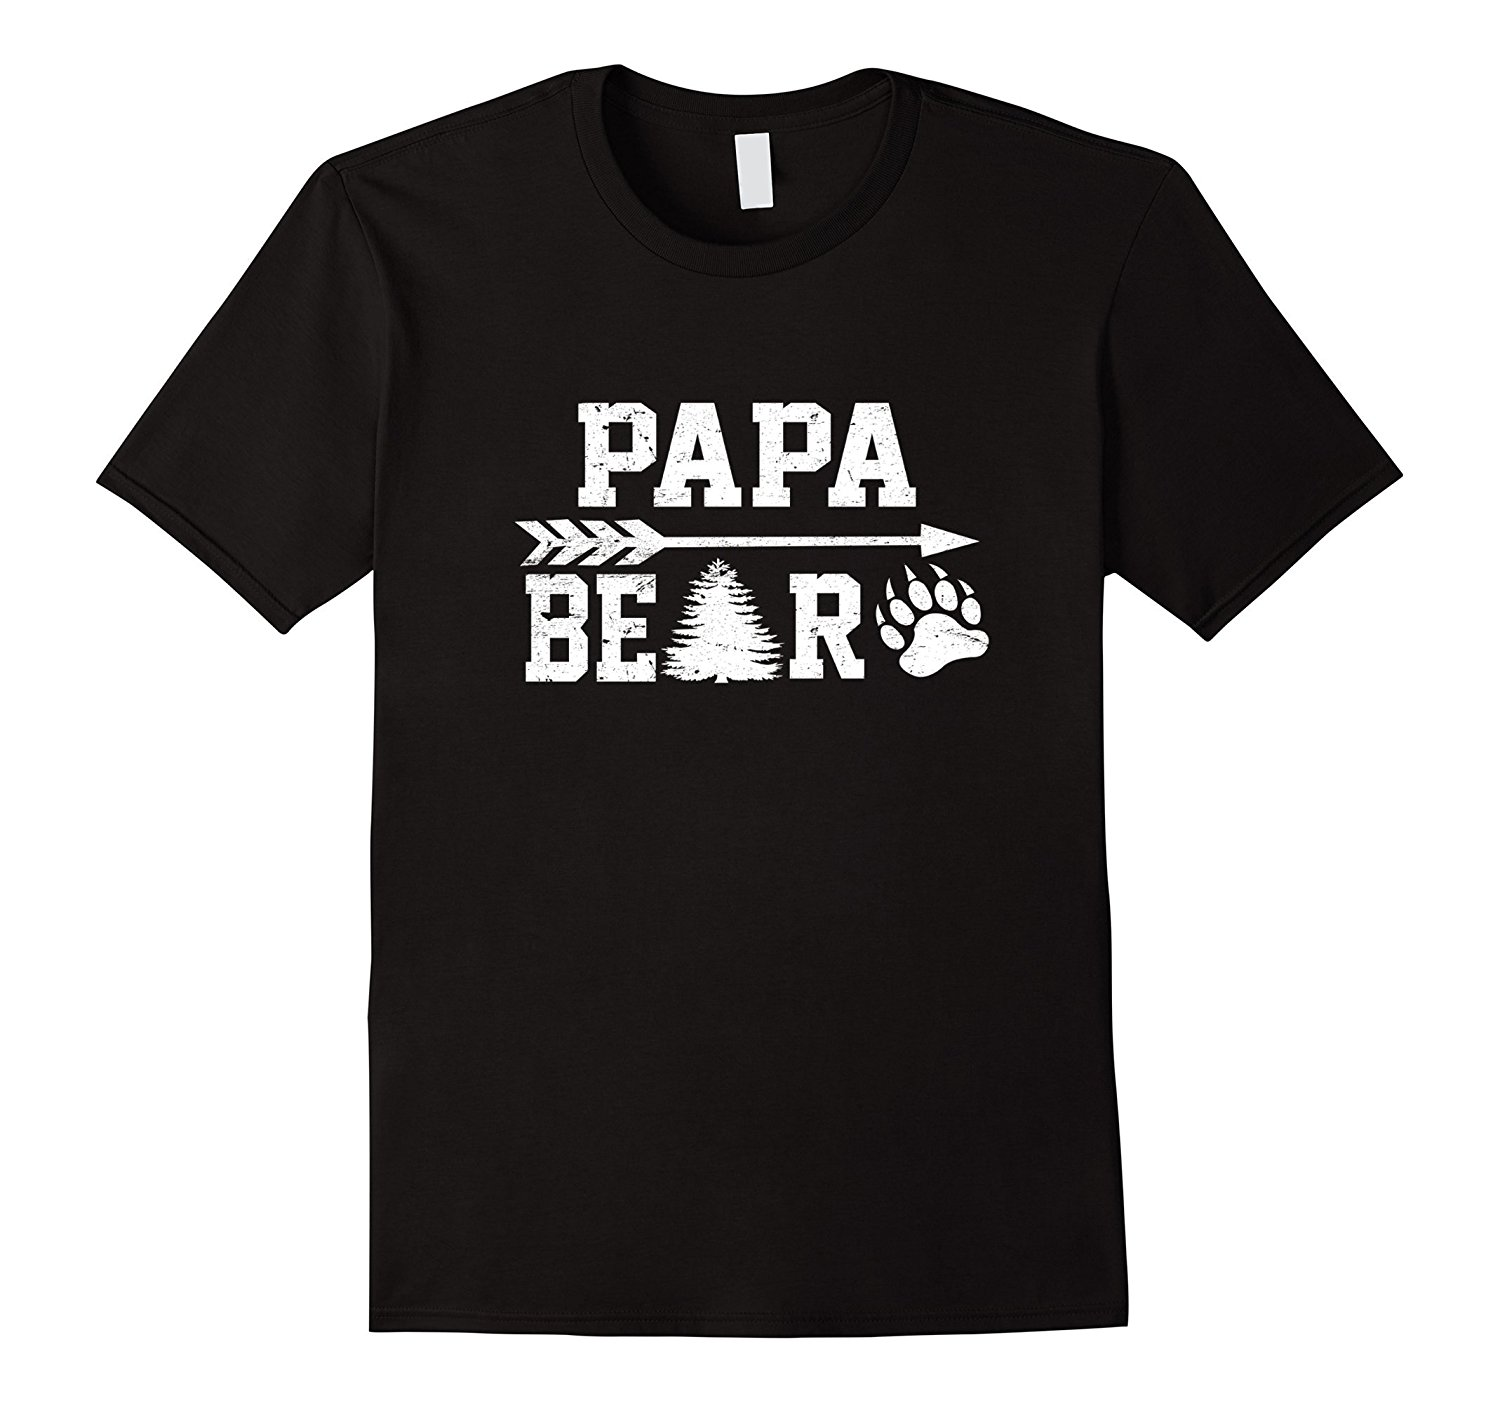 Claw Papa Bear Christmas Pajamas Maching Awesome Tshirt Mens Shirts Short Sleeve Trend Clothing Ment Shirt Summer Style